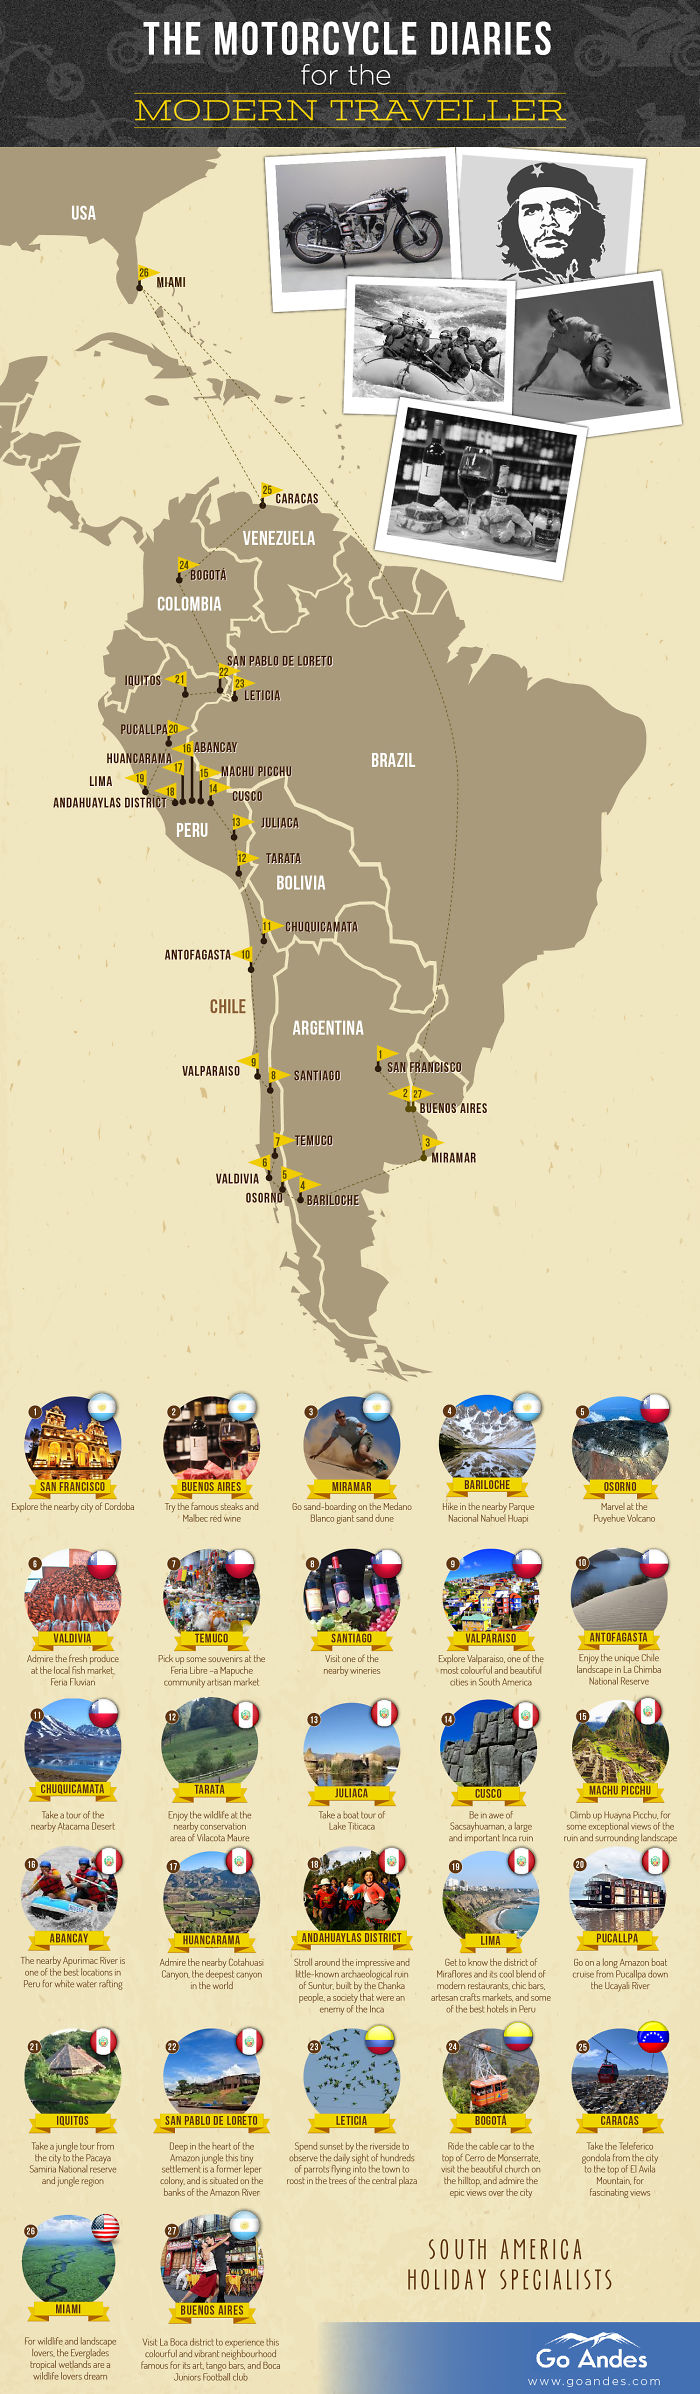 A Map Of The Motorcycle Diaries Route For Modern Times